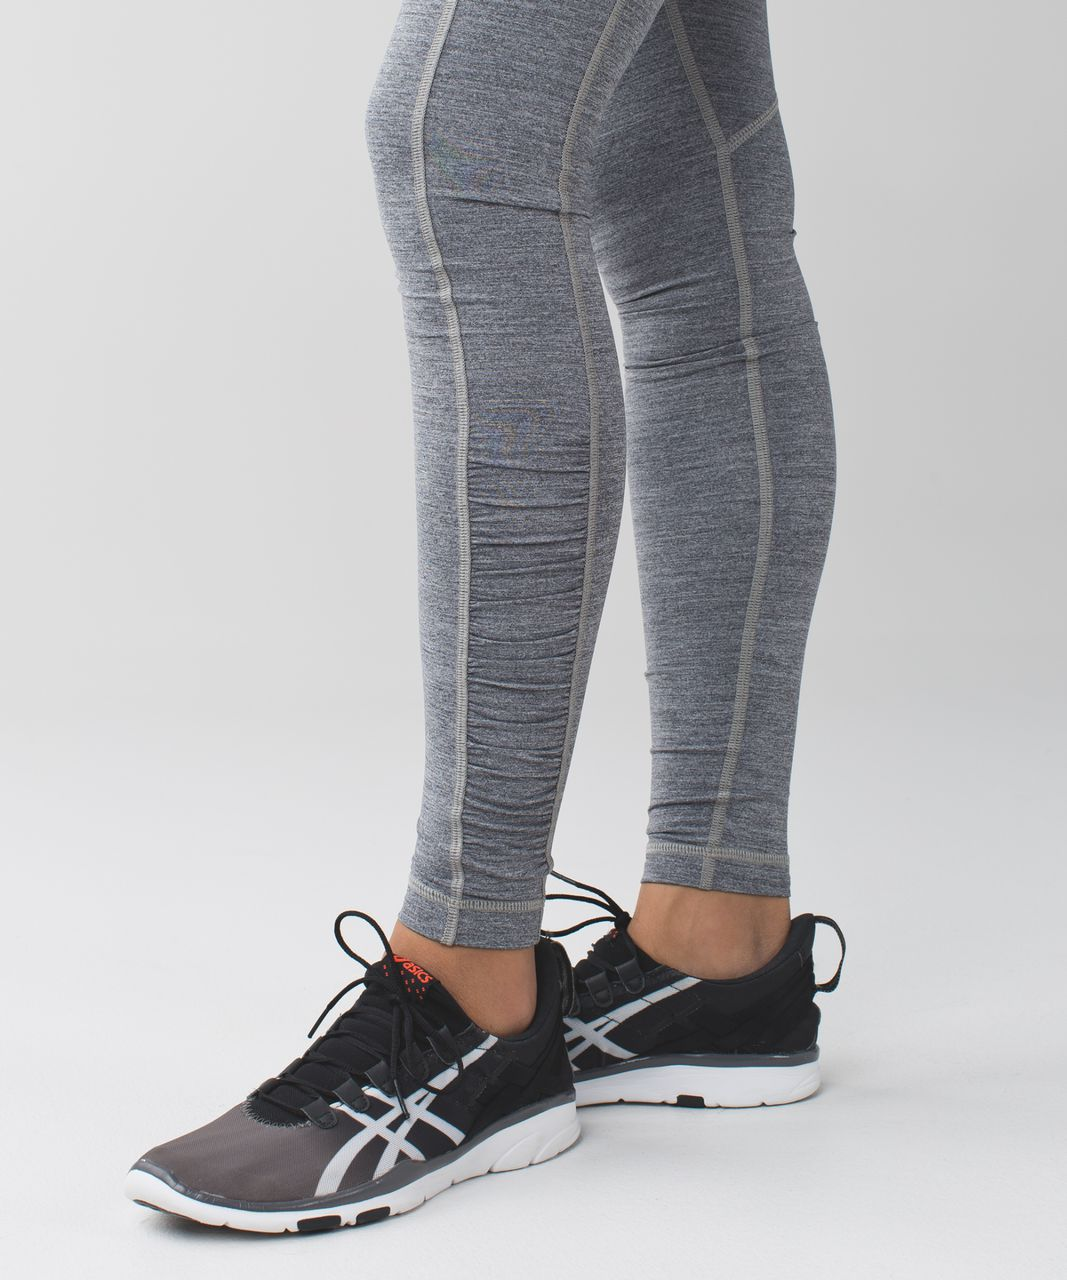 Lululemon Speed Tight IV - Space Dye Camo Black Dark Slate